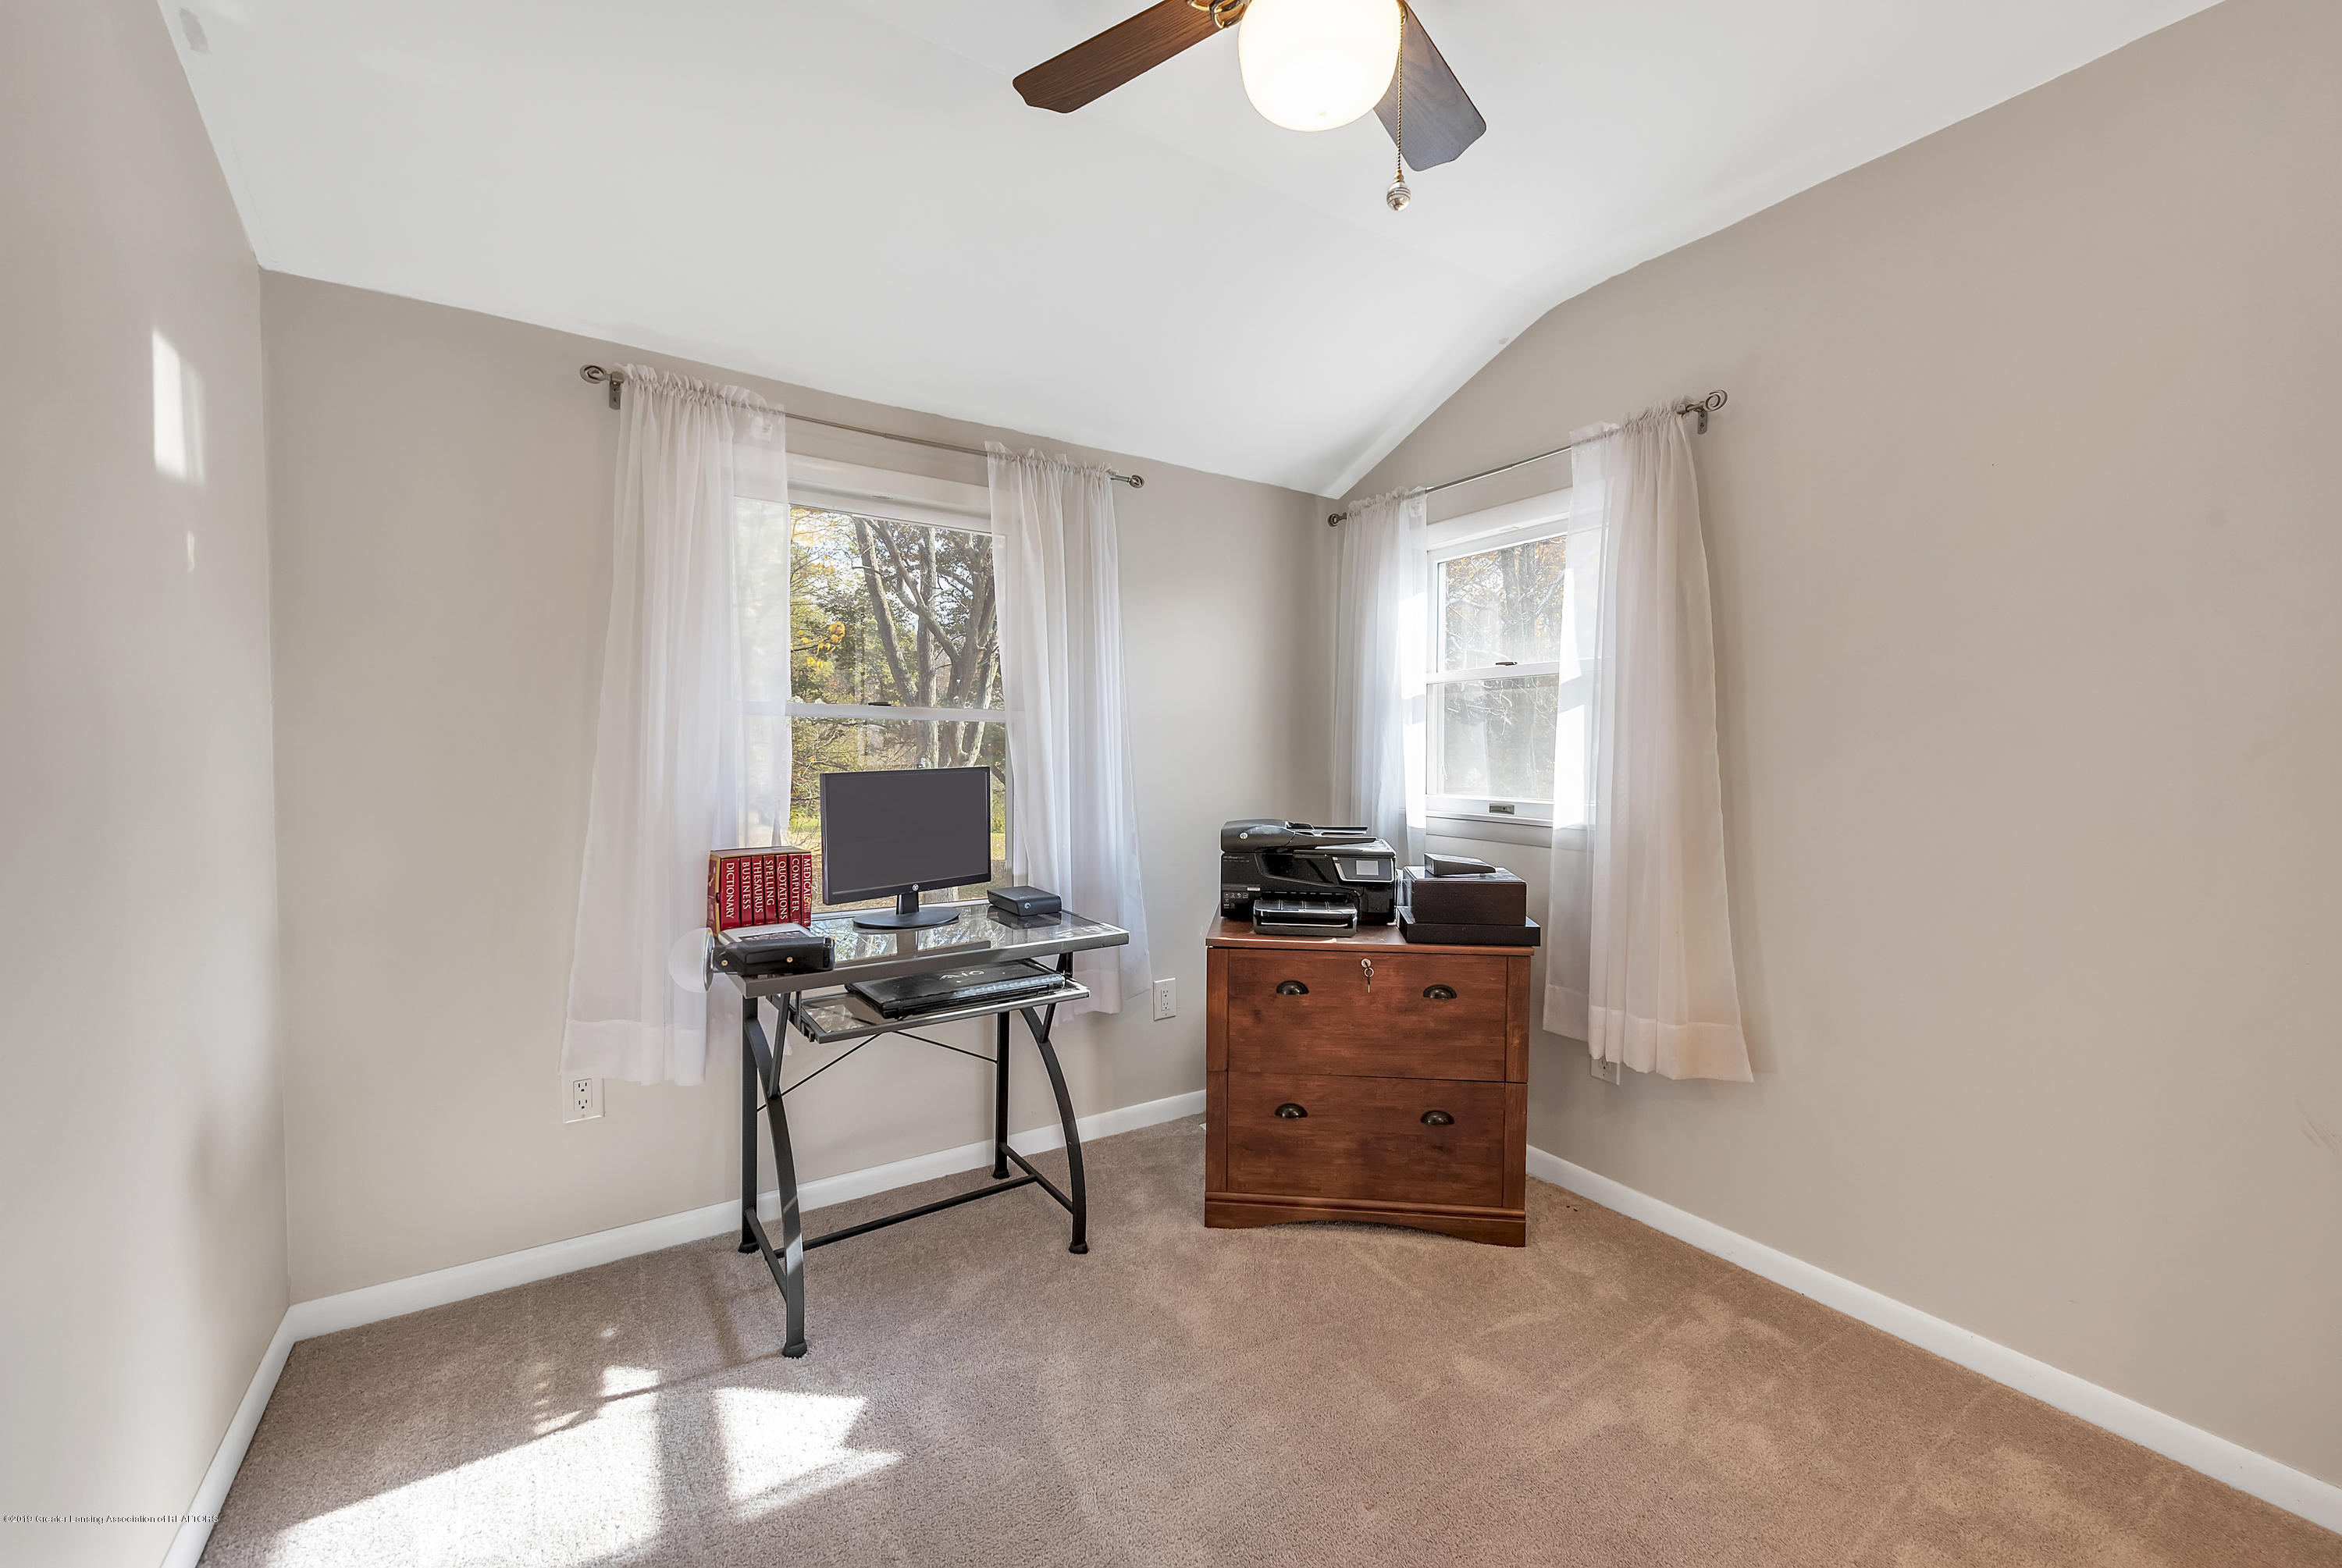 8700 Abbey Rd - 8700-Abbey-Rd-WindowStill-Real-Estate-Ph - 15